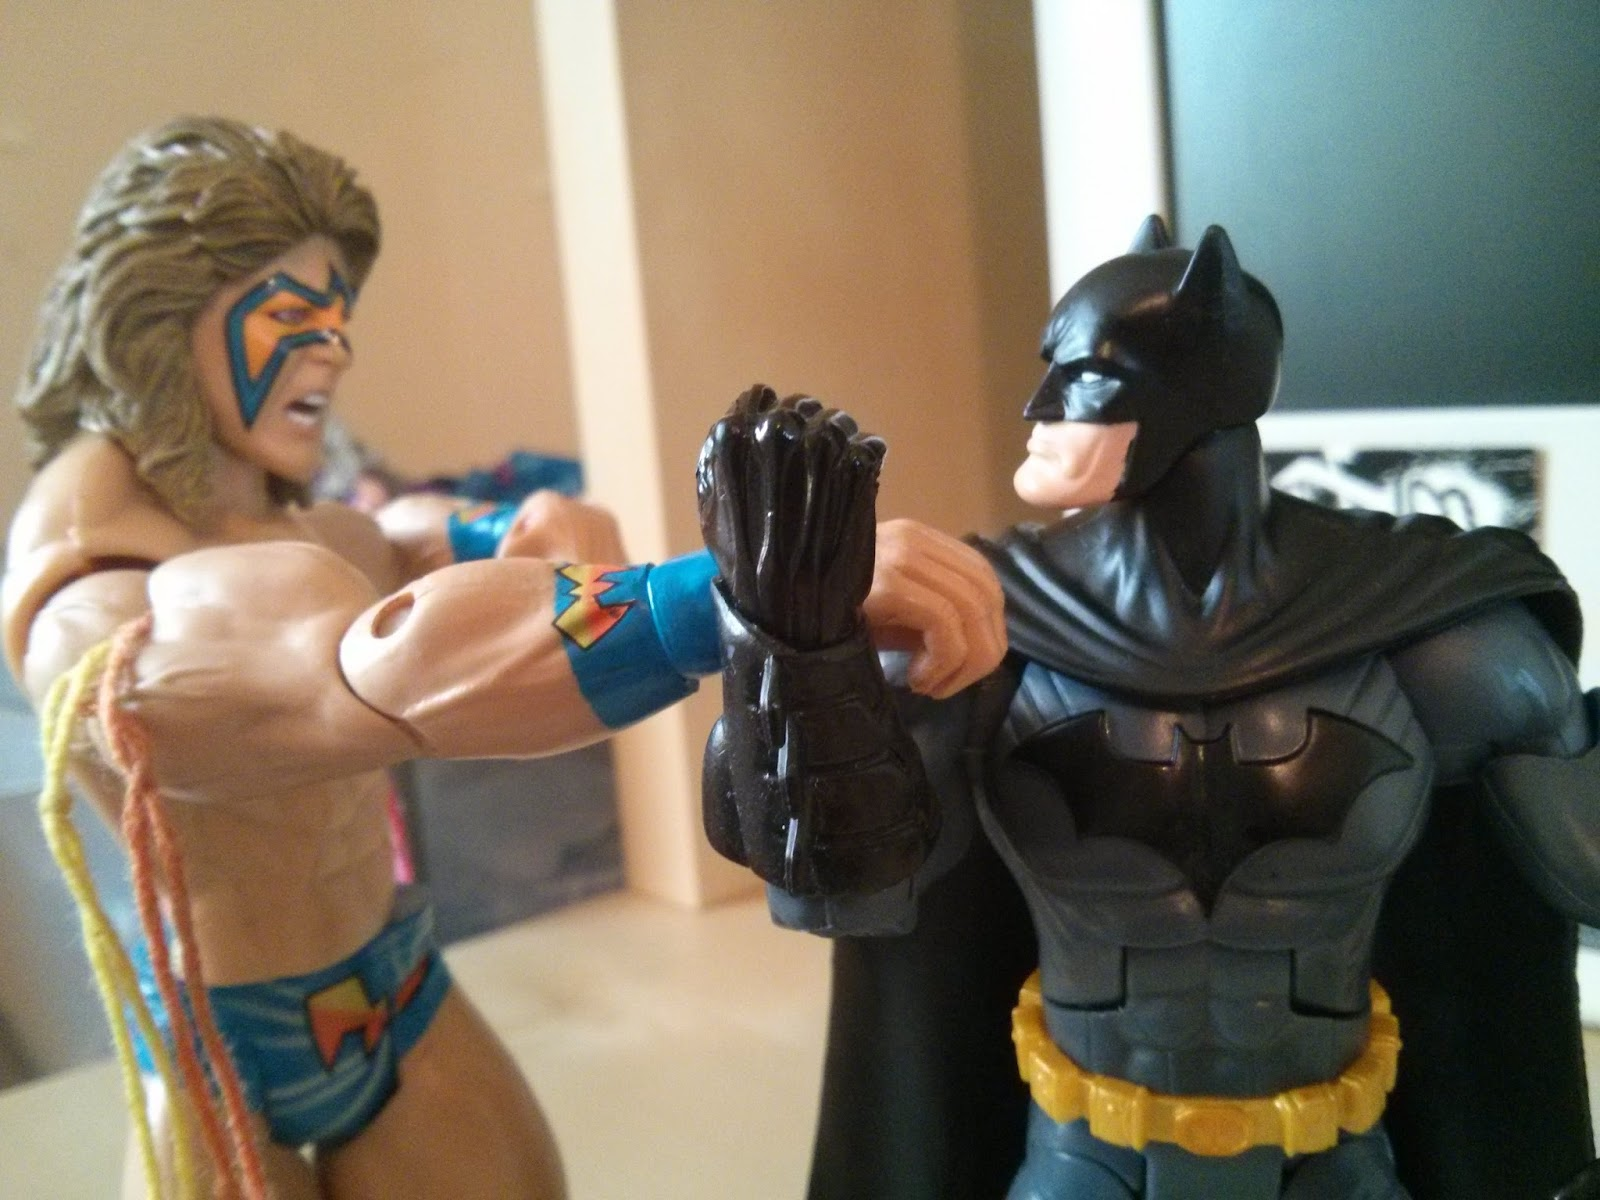 batman vs ultimate warrior!